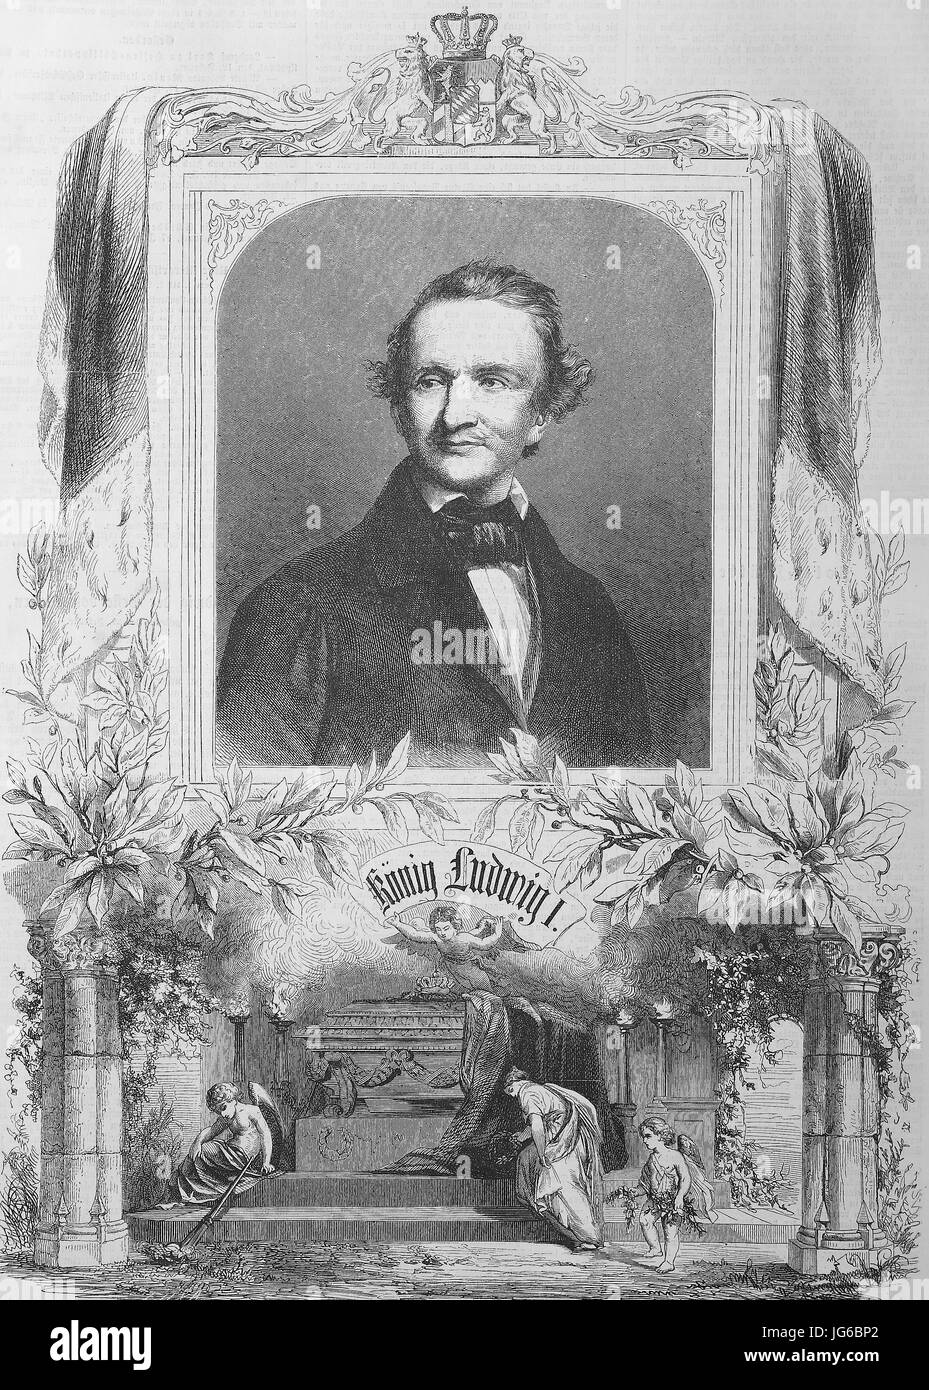 Digital improved:, Ludwig I, Louis I, 1786 - 1868, was king of Bavaria from 1825 until the 1848 revolutions, Germany, - Stock Image